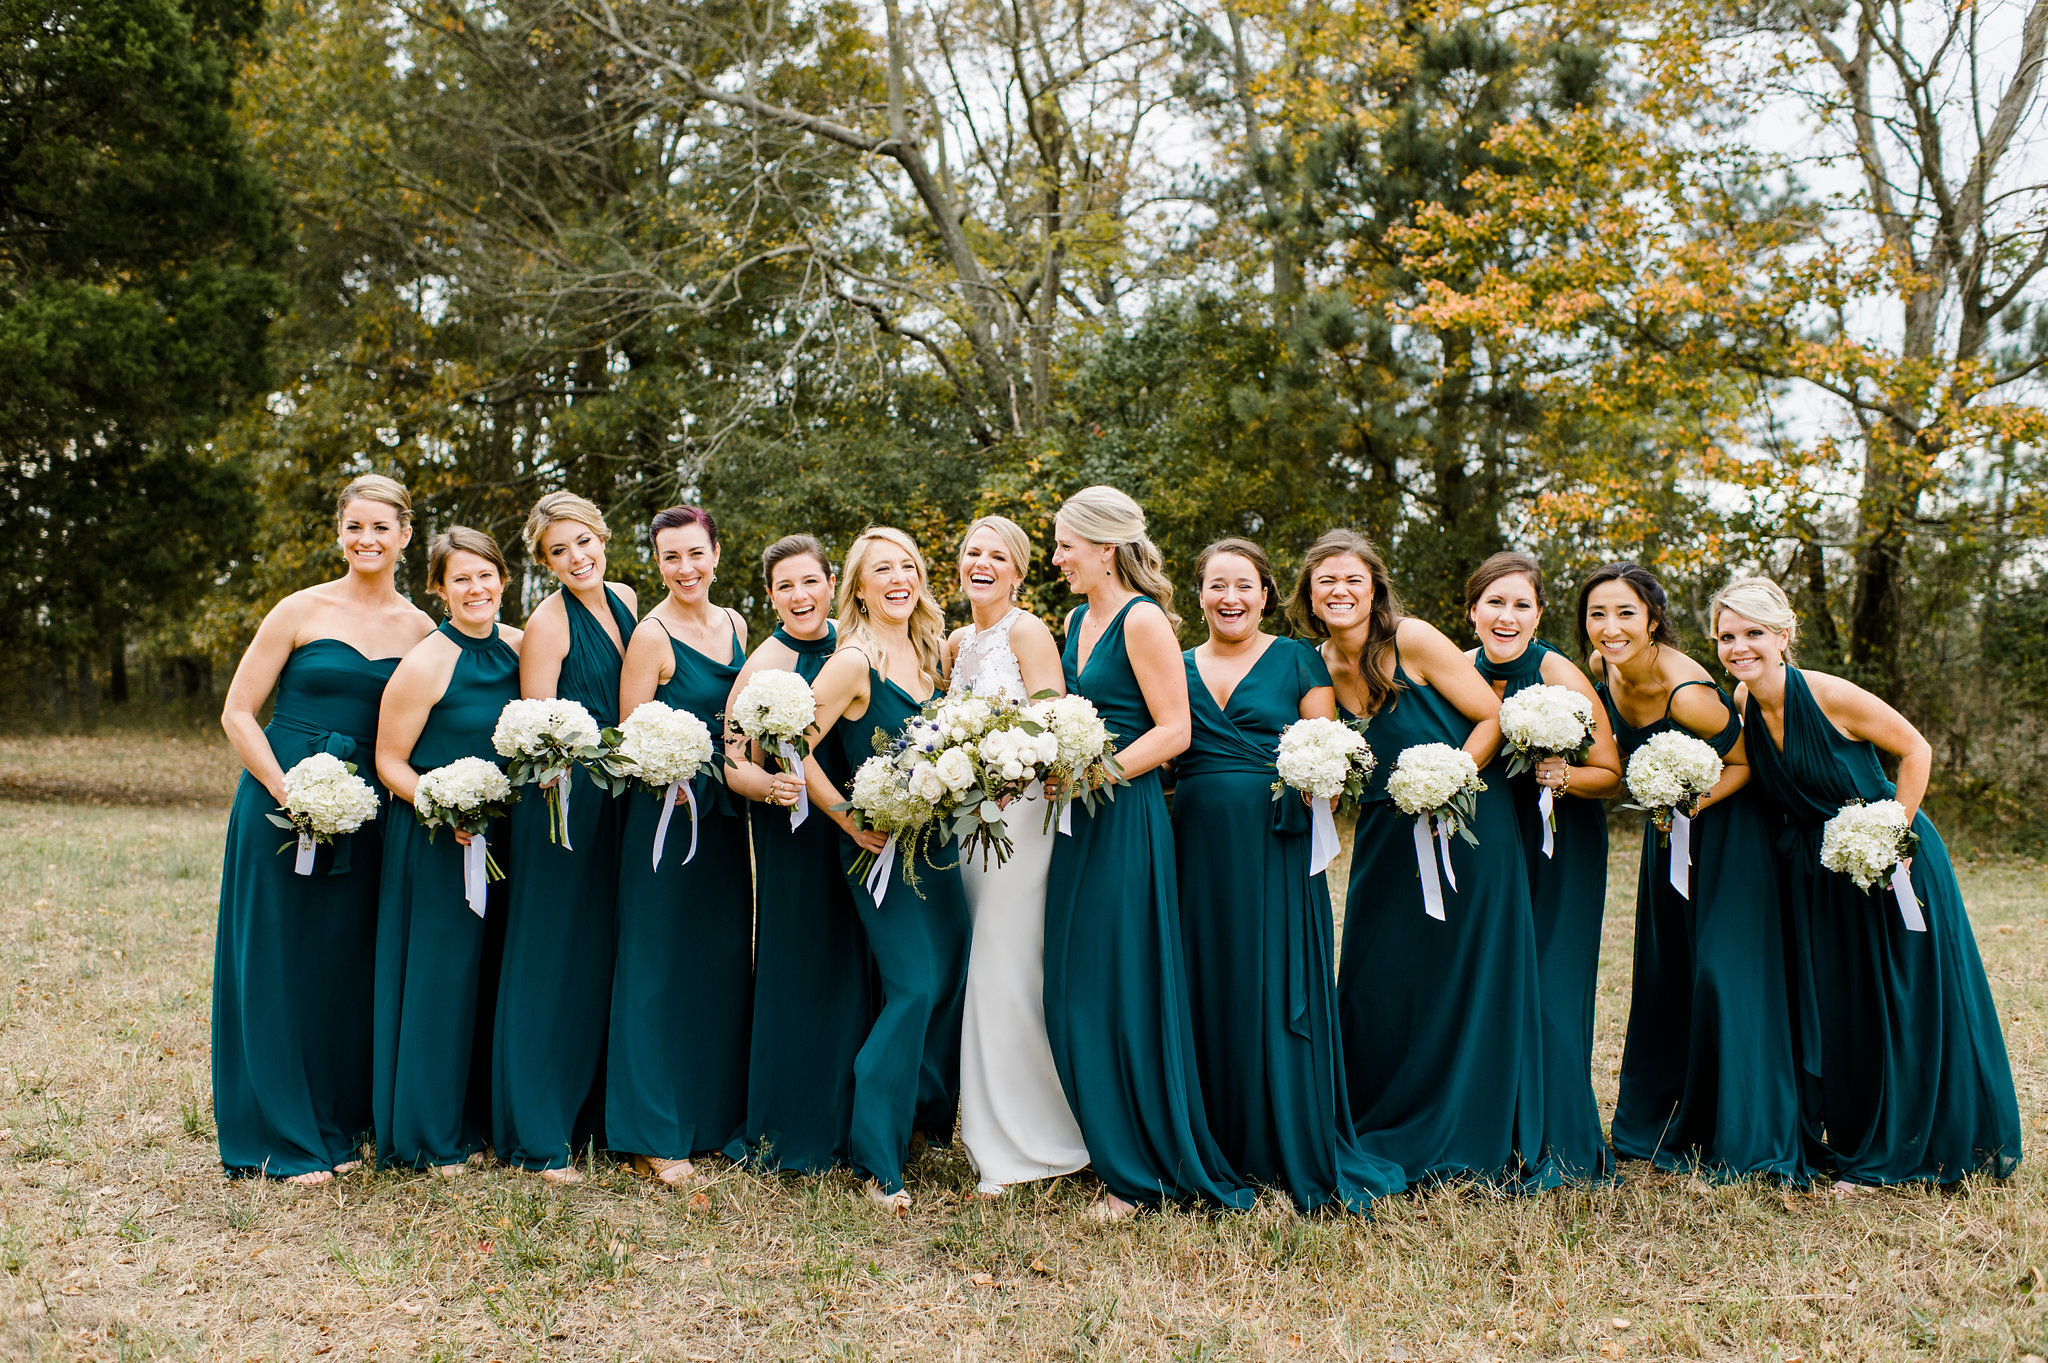 Bridesmaids with Bride wearing Teal dresses hold bouquets by Chesapeake Blooms